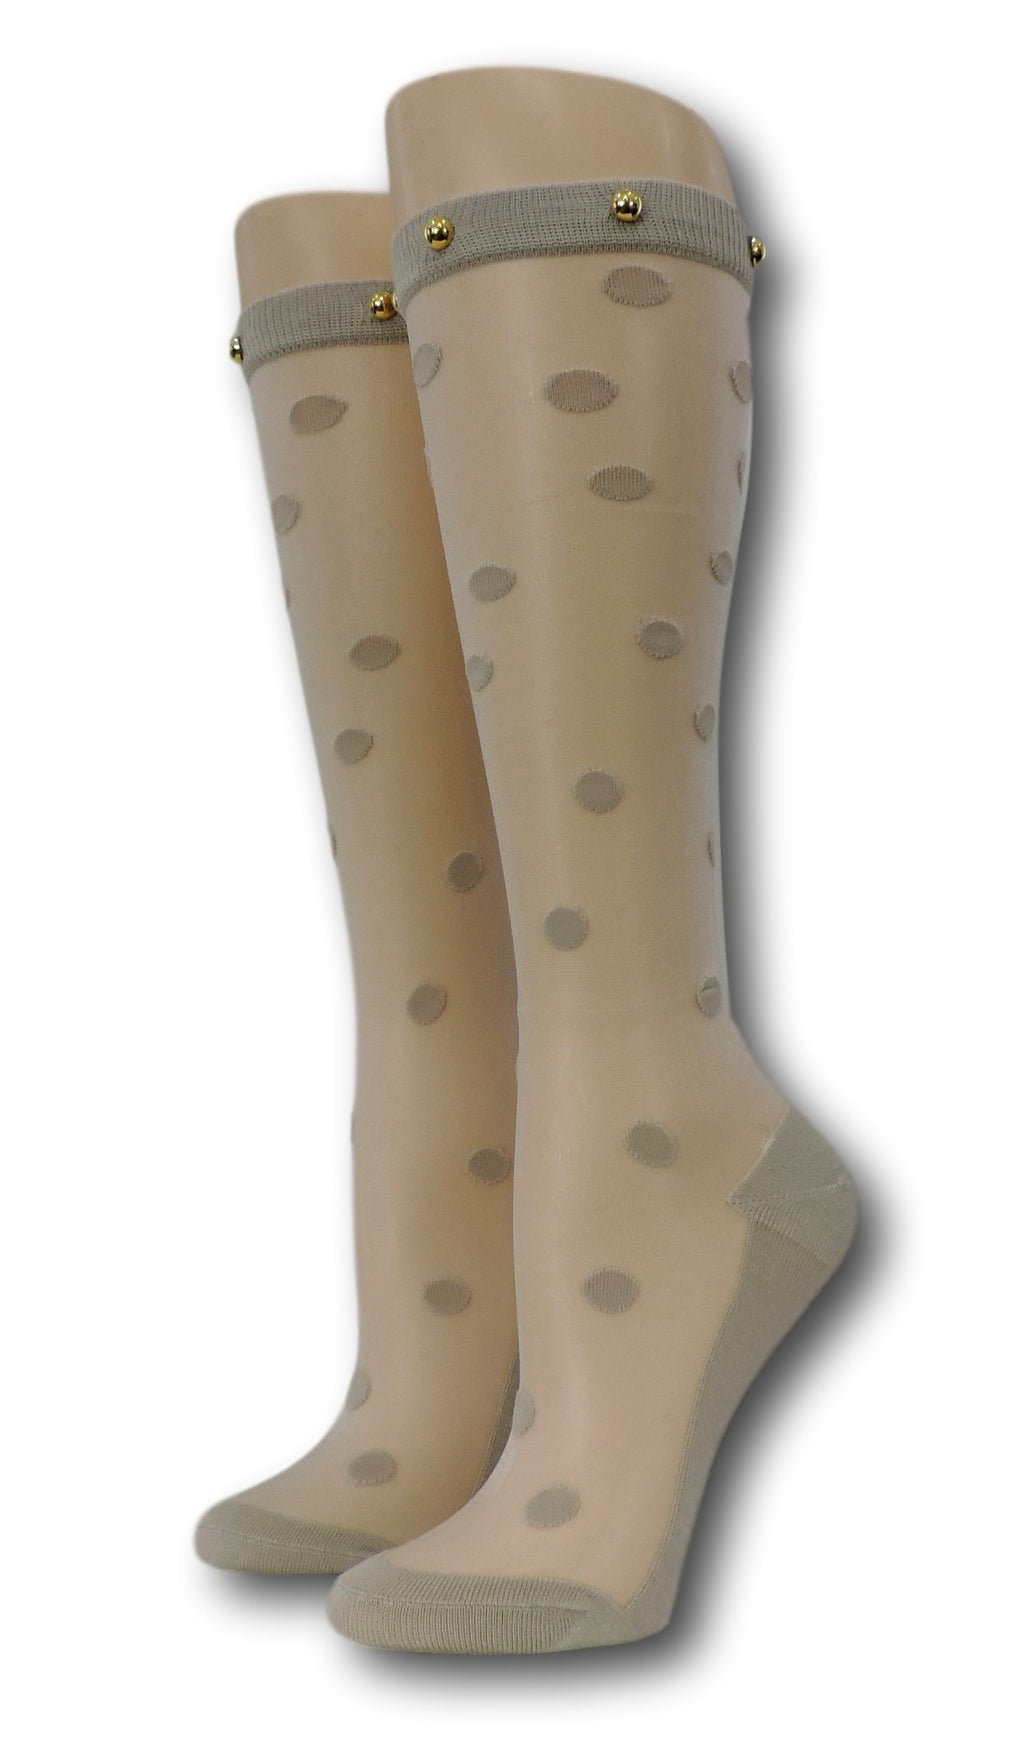 Teal Polka Knee High Sheer Socks with beads